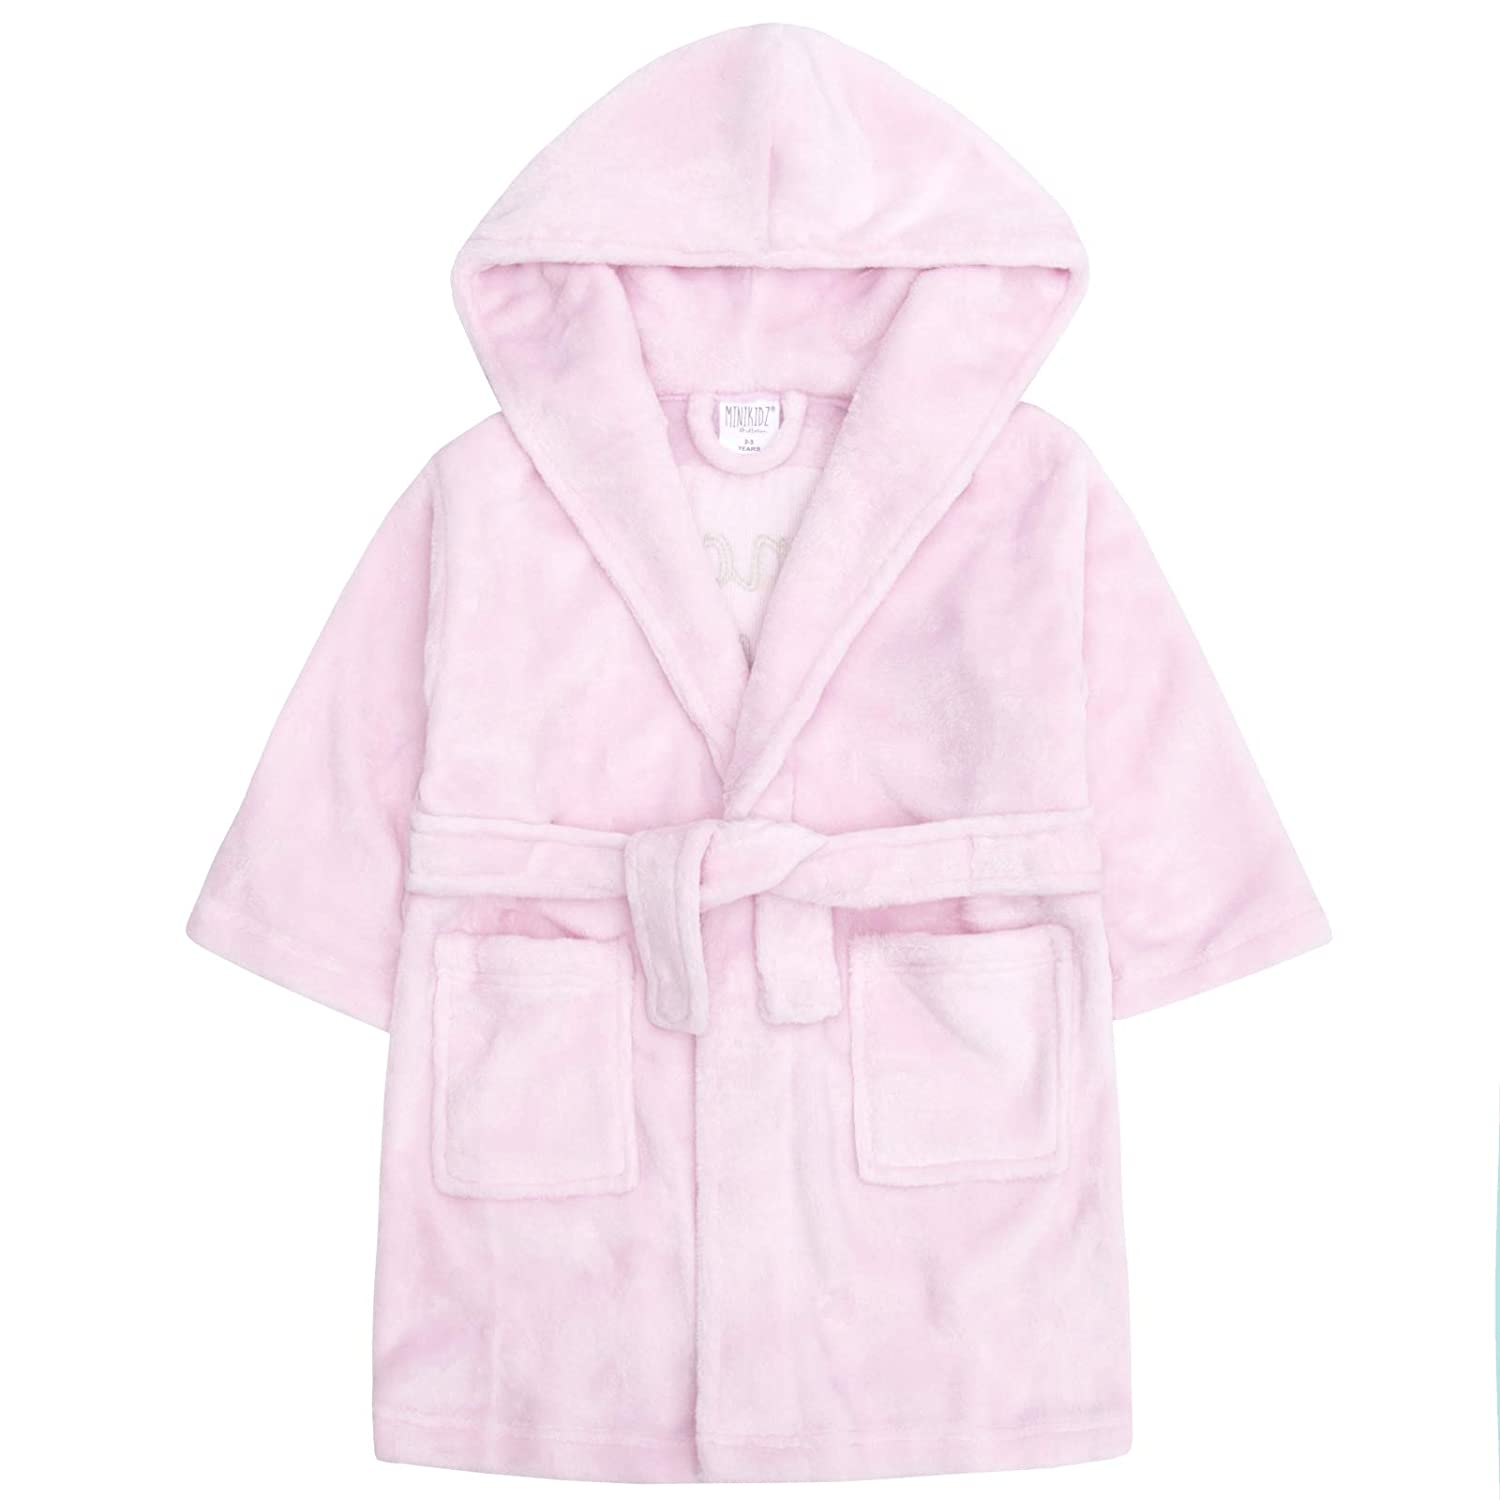 Girls Dressing Gown Pink Princess Squad Sequin Detail Hooded Robe Bath Robe